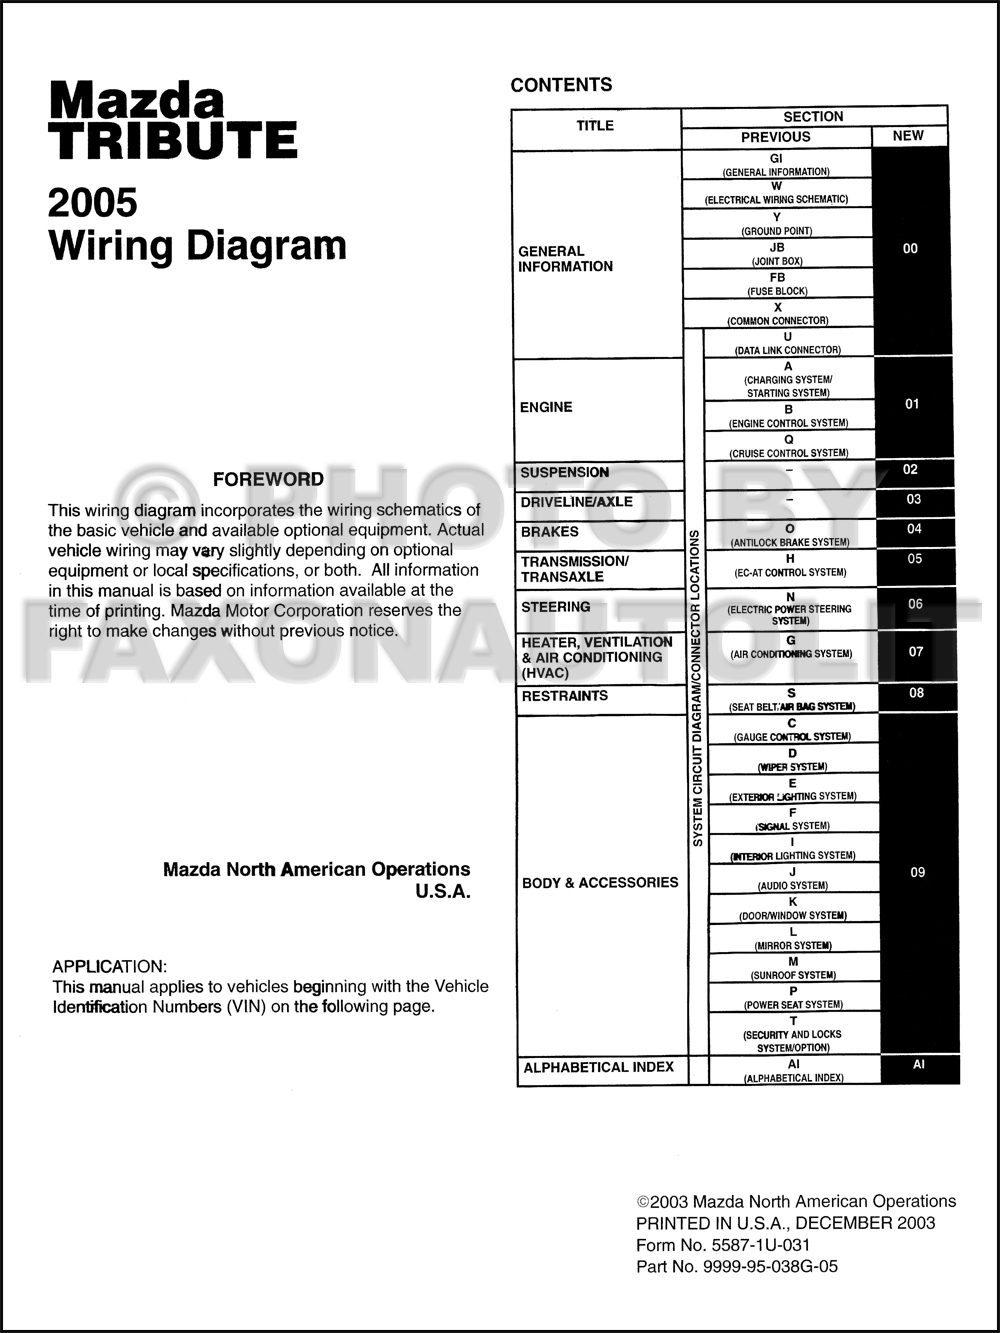 2005MazdaTributeOWD TOC 2005 mazda tribute wiring diagram manual original 2005 mazda tribute wiring diagram at reclaimingppi.co